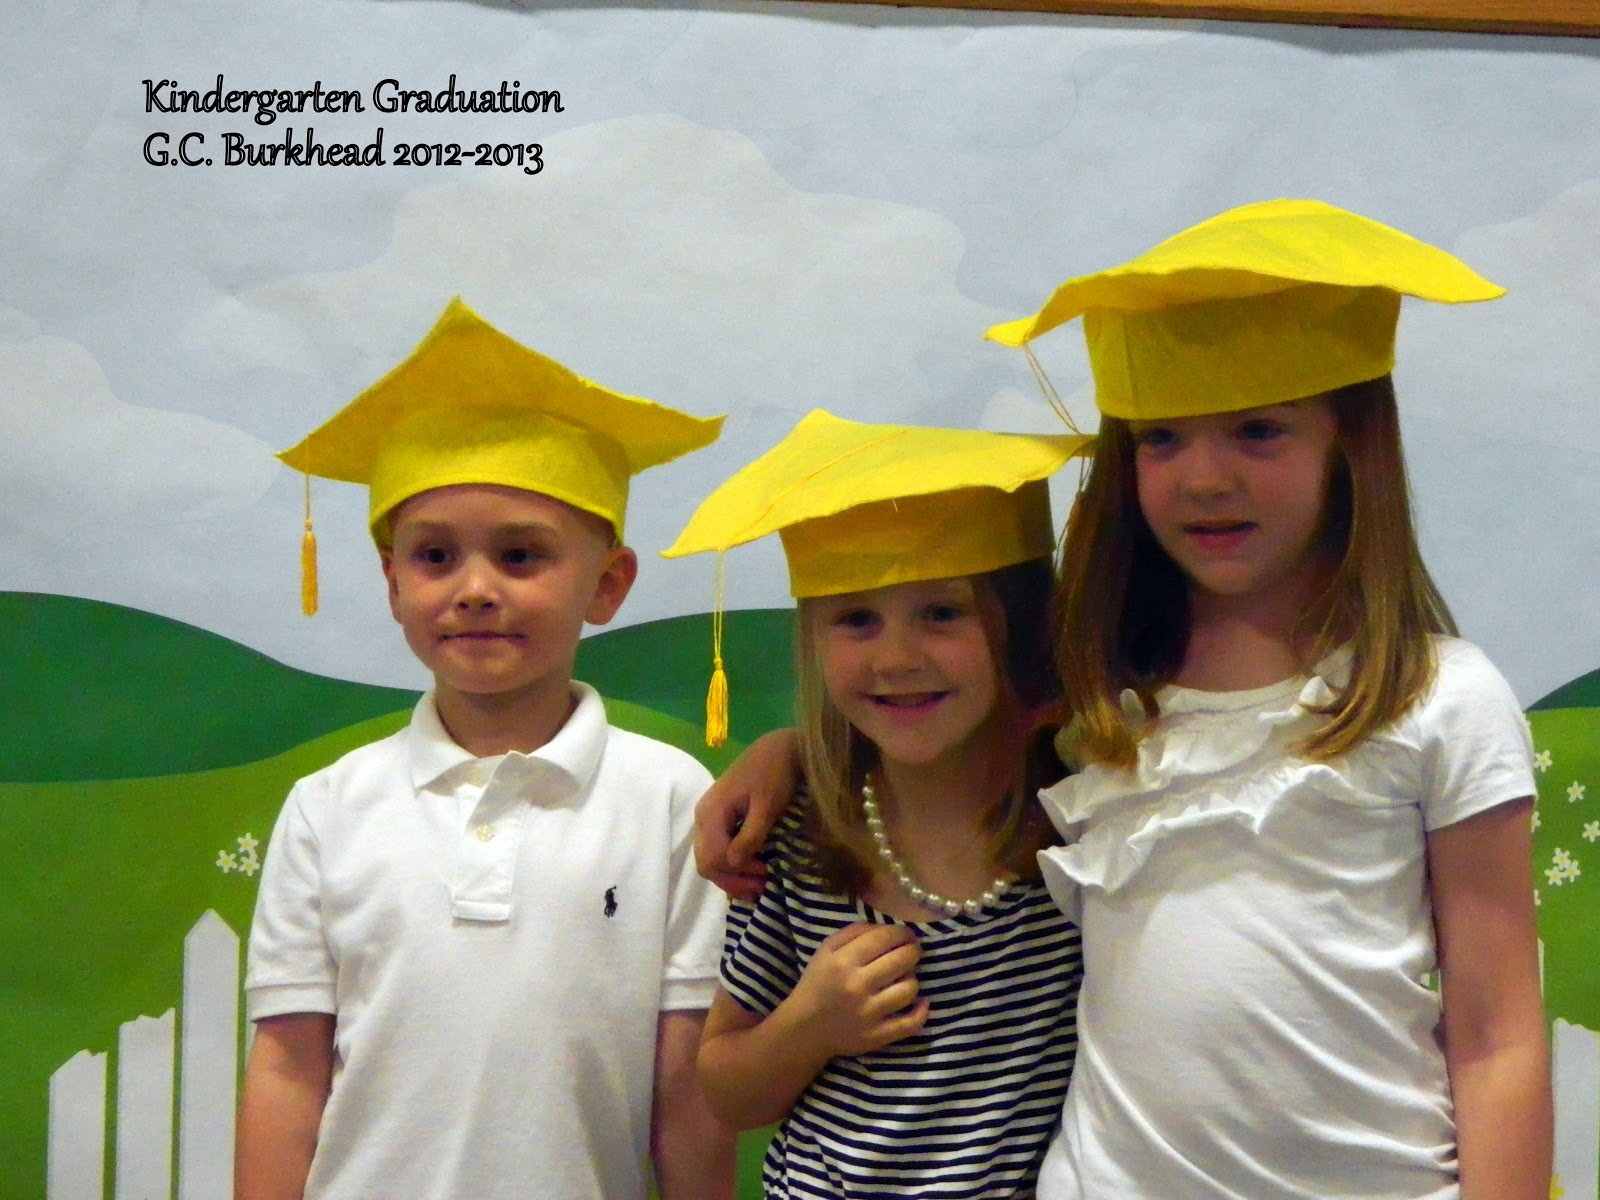 kindergarten graduation welcome speech A kindergarten graduation speech should include recognition of achievements, praise, positive language that is easy for the graduates to understand and a note of thanks to the teachers and the parents of the graduates.